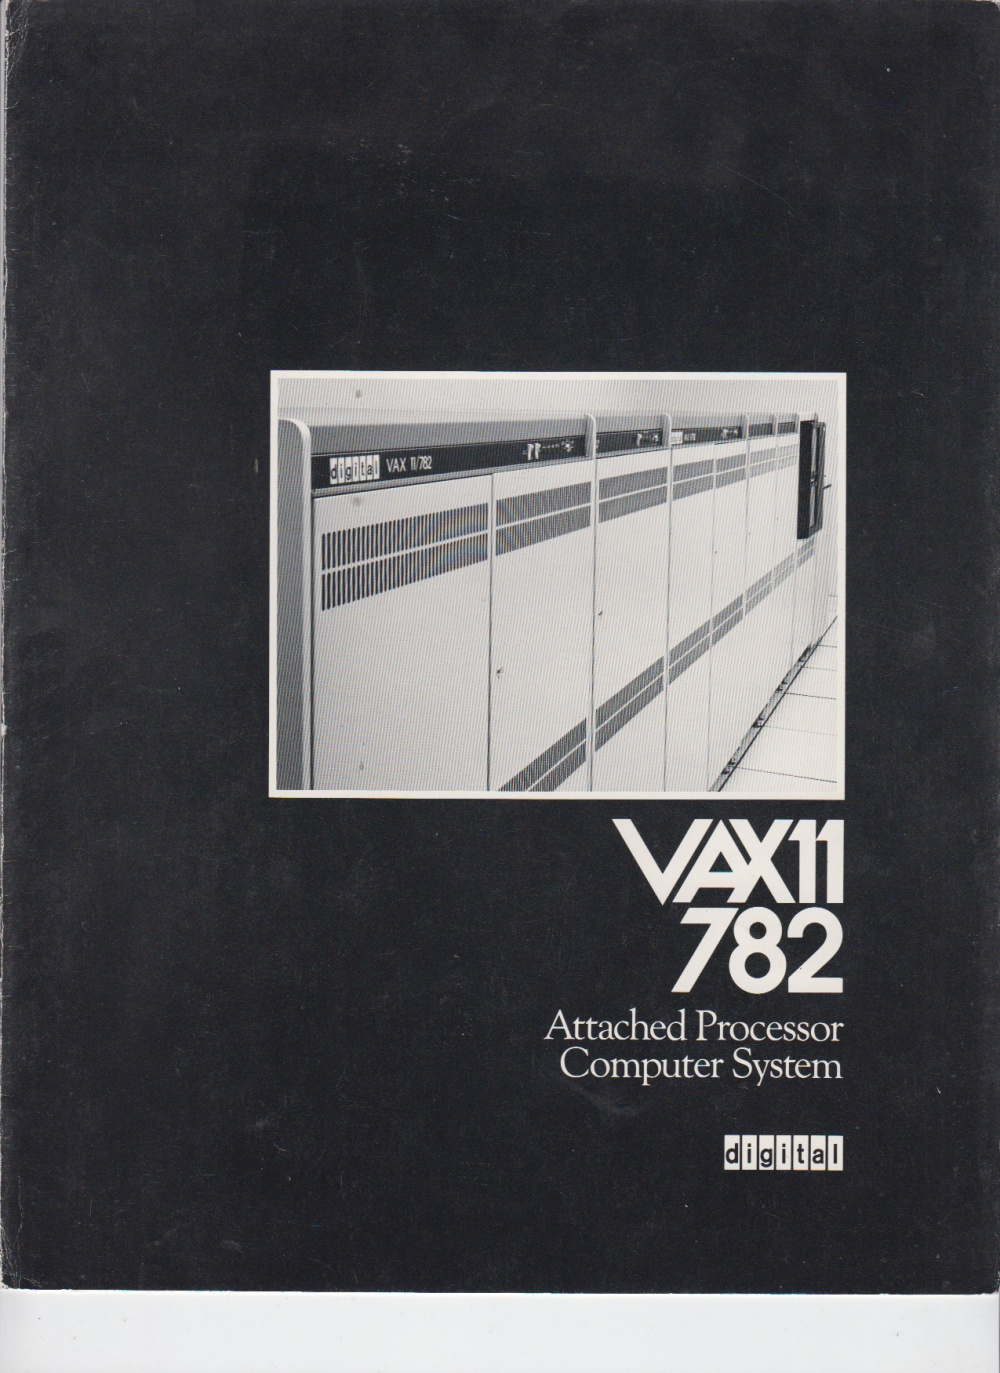 Scan of Document: VAX-11 782 - Attached Processor Computer System